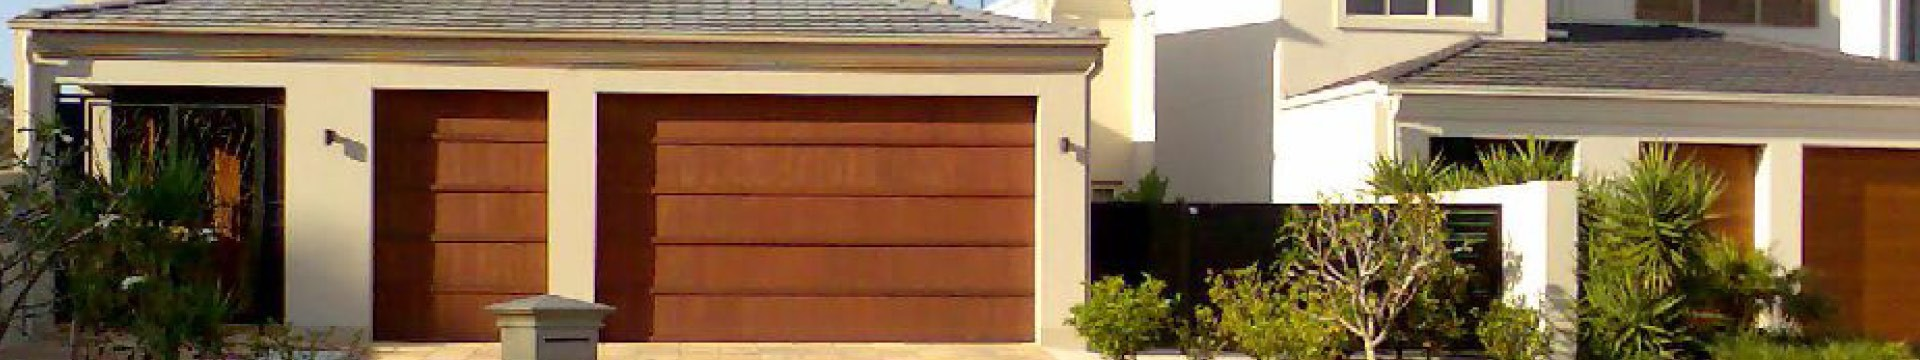 affordable-gold-coast-garage-doors-1.jpg